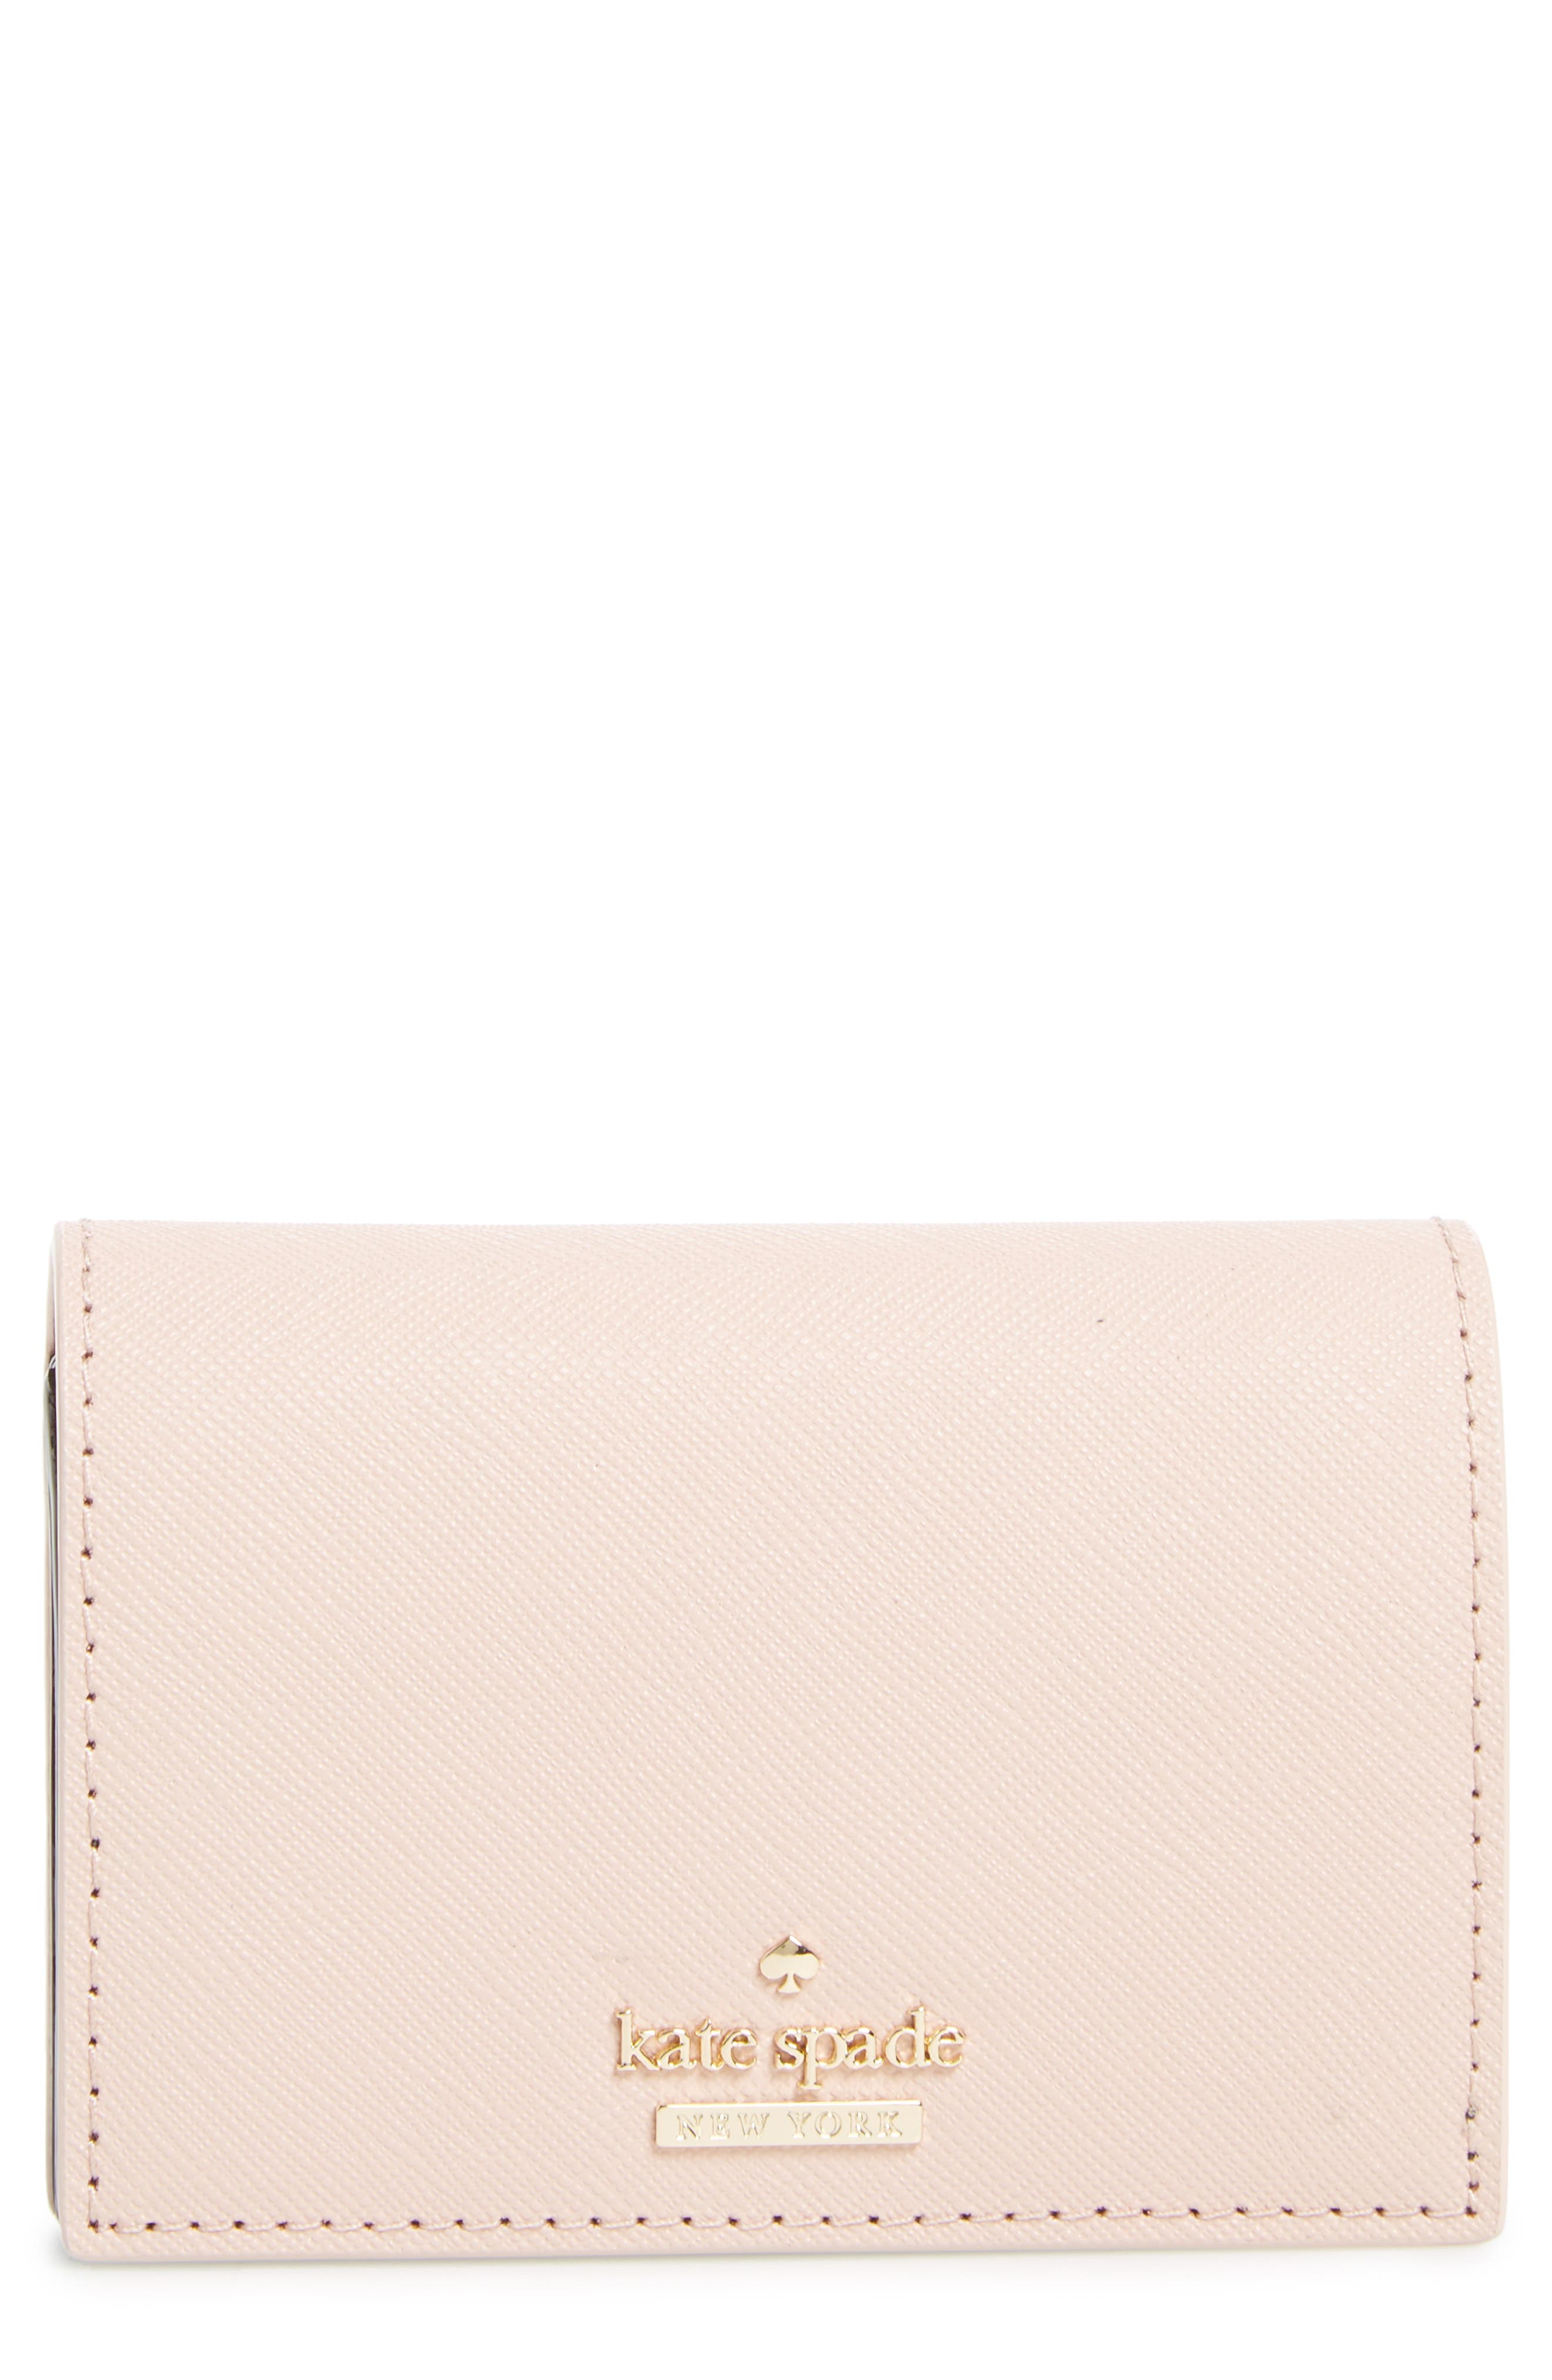 kate spade new york cameron street - annabella accordioned card case